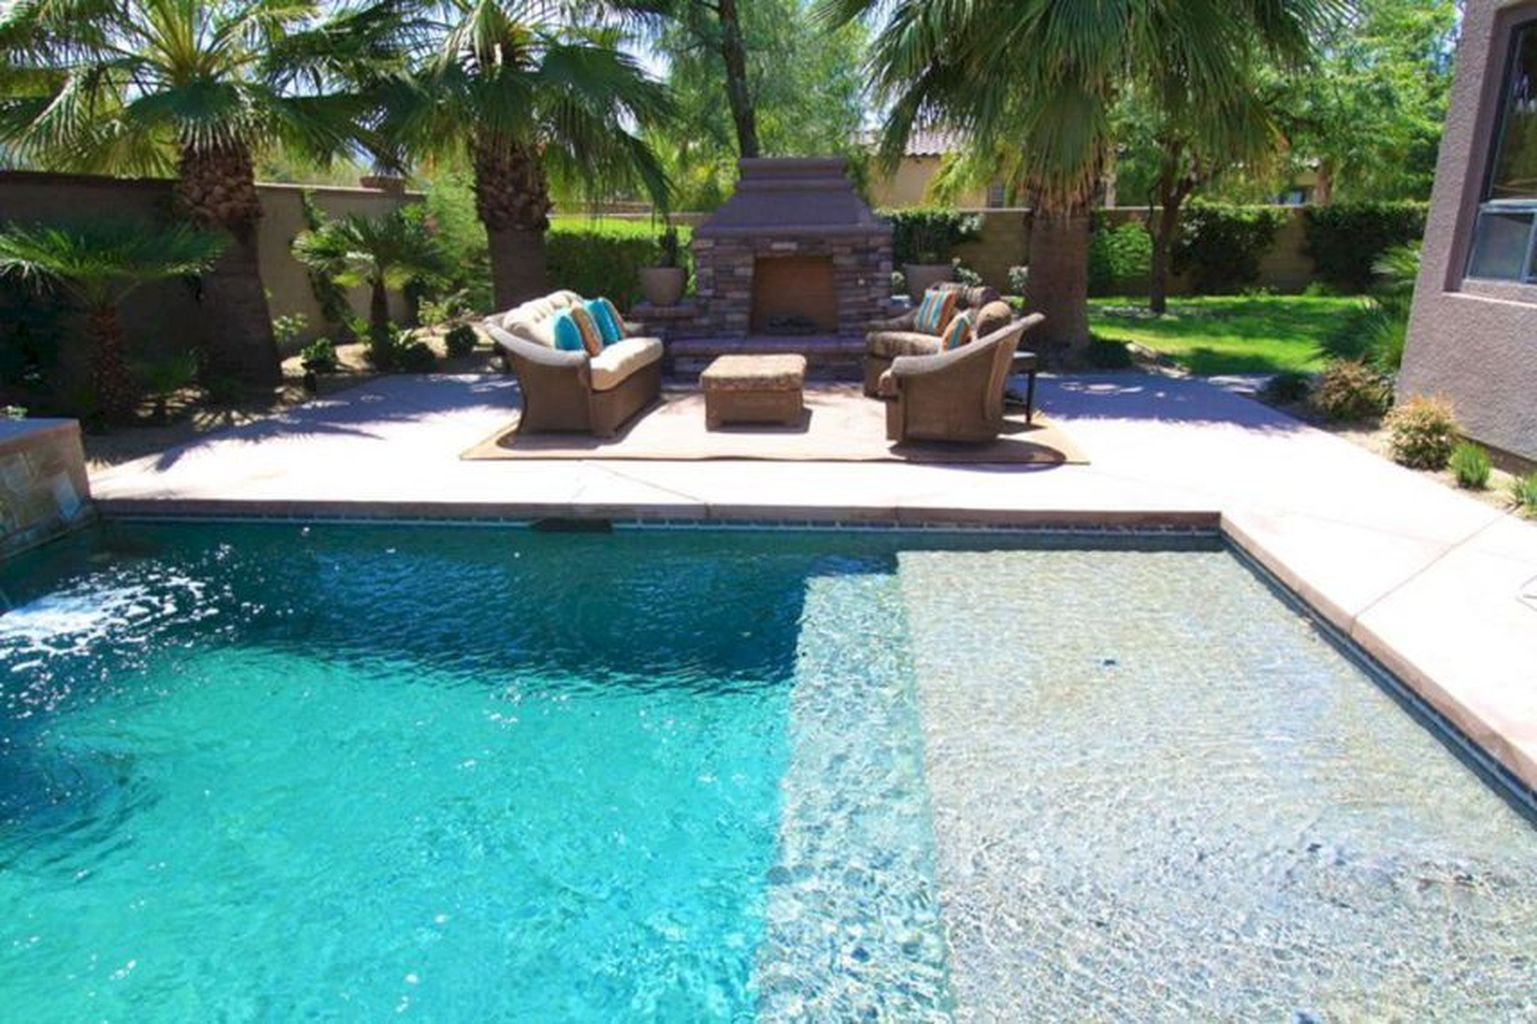 40 Spool Pool For Small Yards If You Re Prepared To Get A Pool Consider The Advantage Petit Bassin De Jardin Piscine Amenagement Paysager Piscine Et Jardin